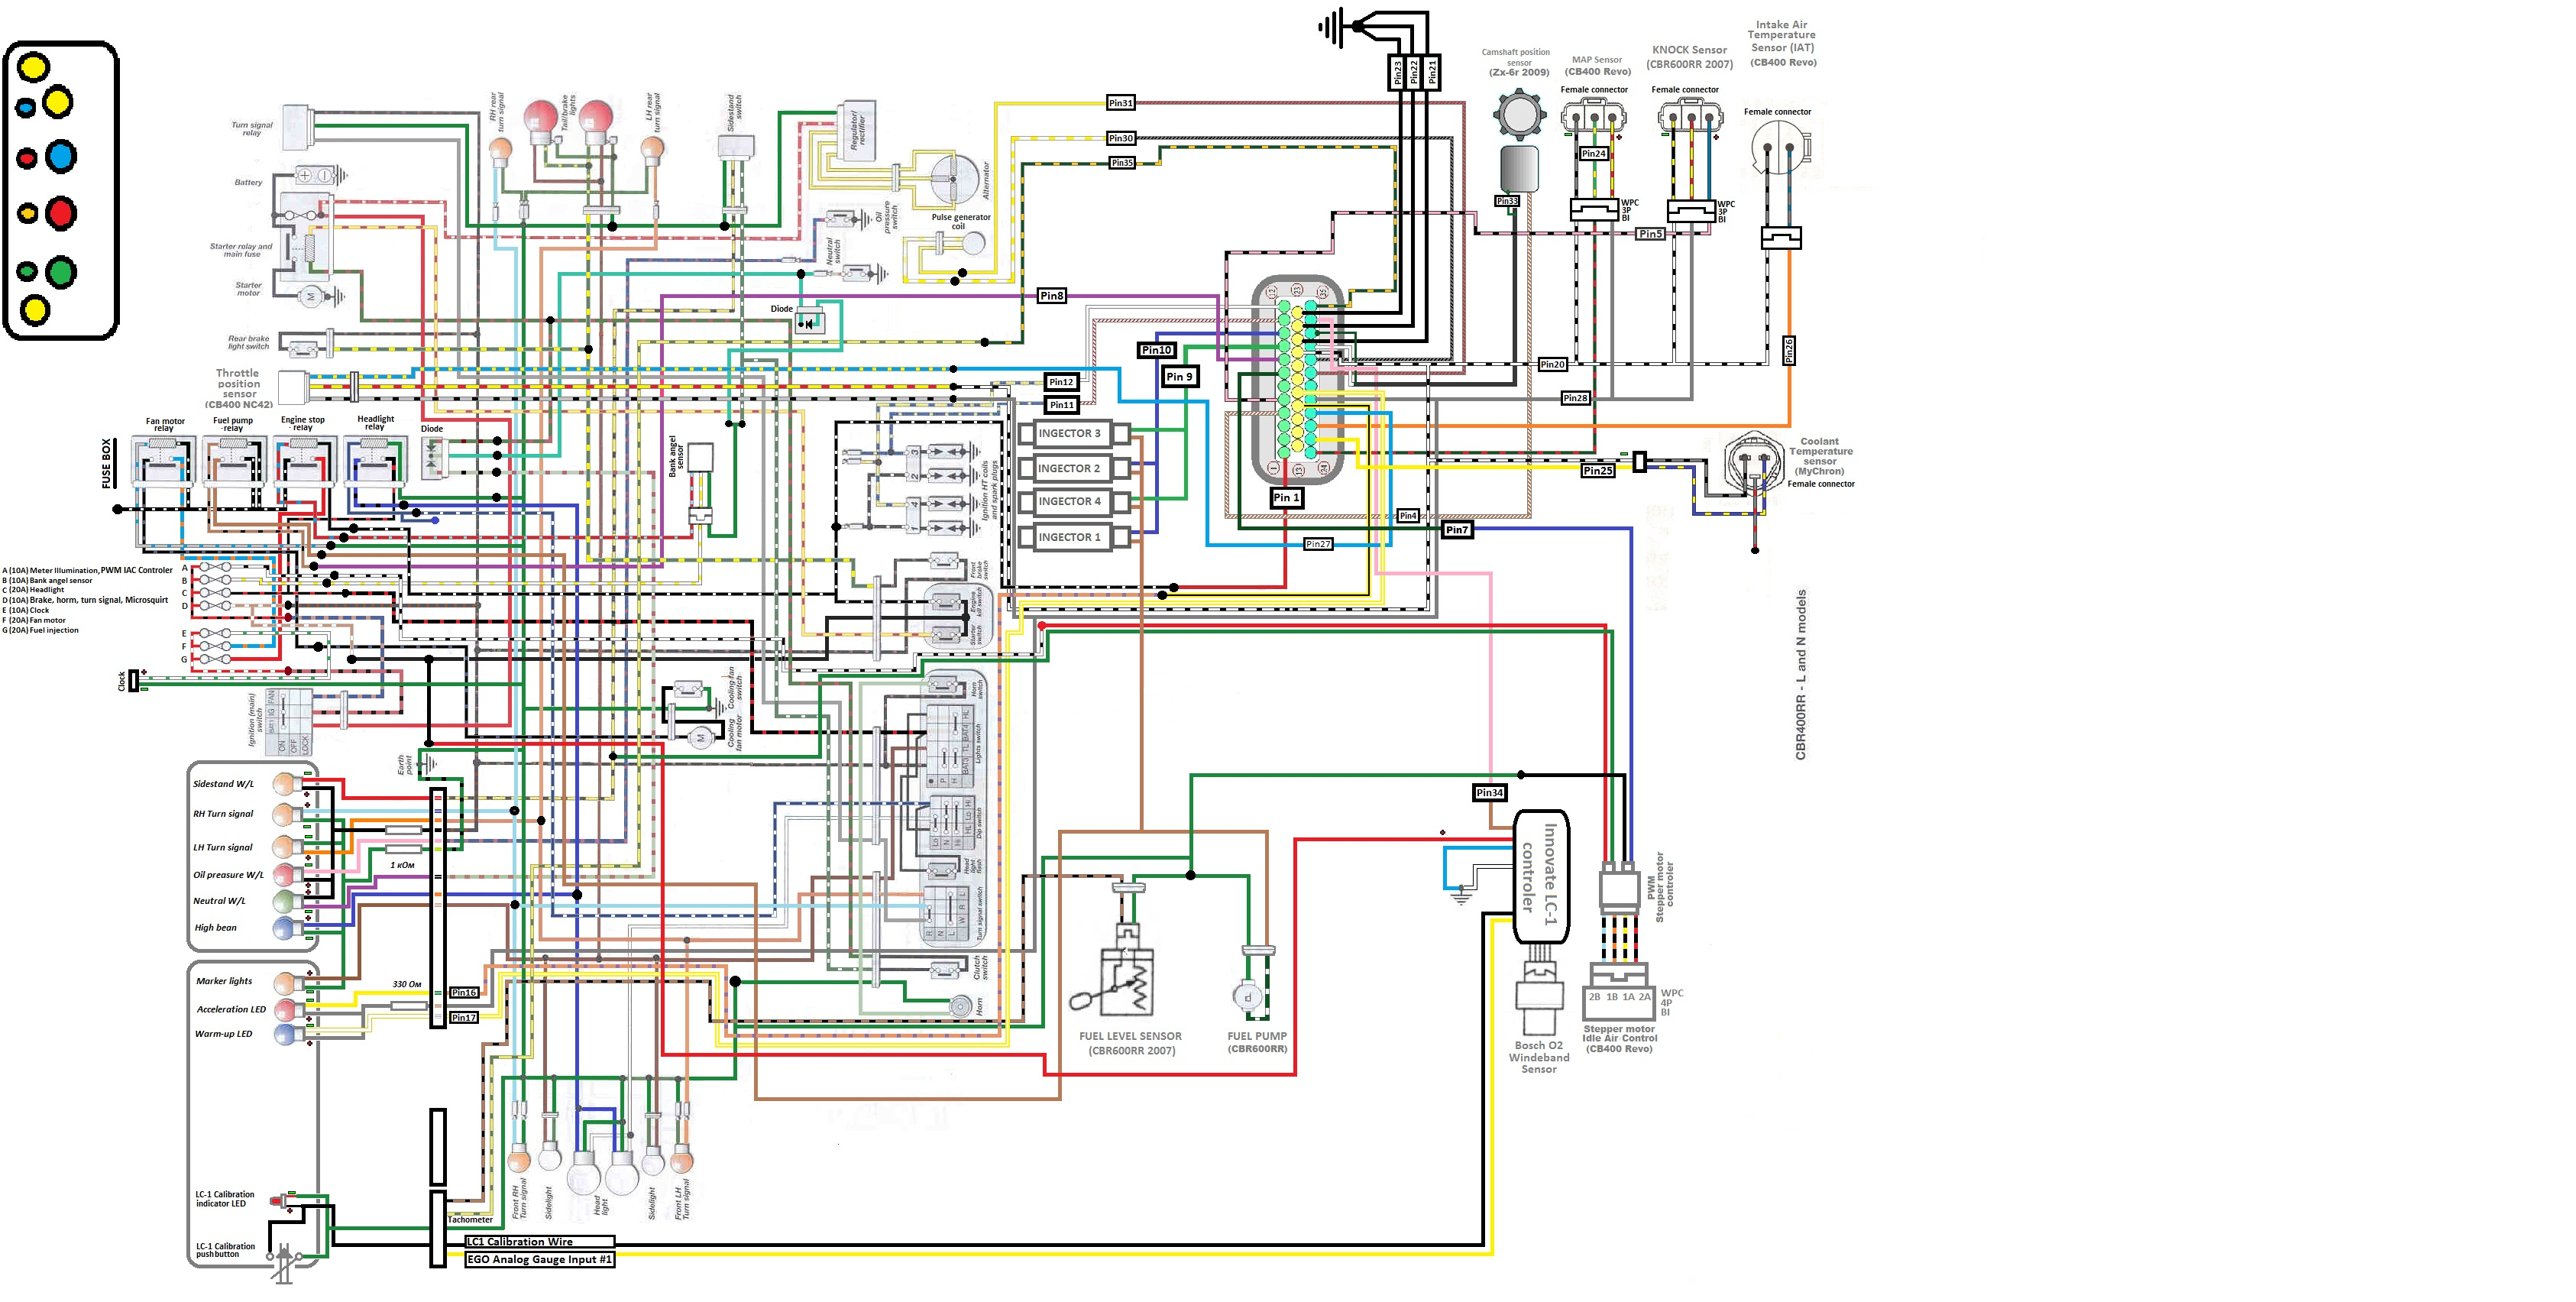 CBR400RR_NC29_Microsquirt_wiring_loom motorcycle wiring diagrams 2000 cbr 600 f4 wiring diagram at crackthecode.co